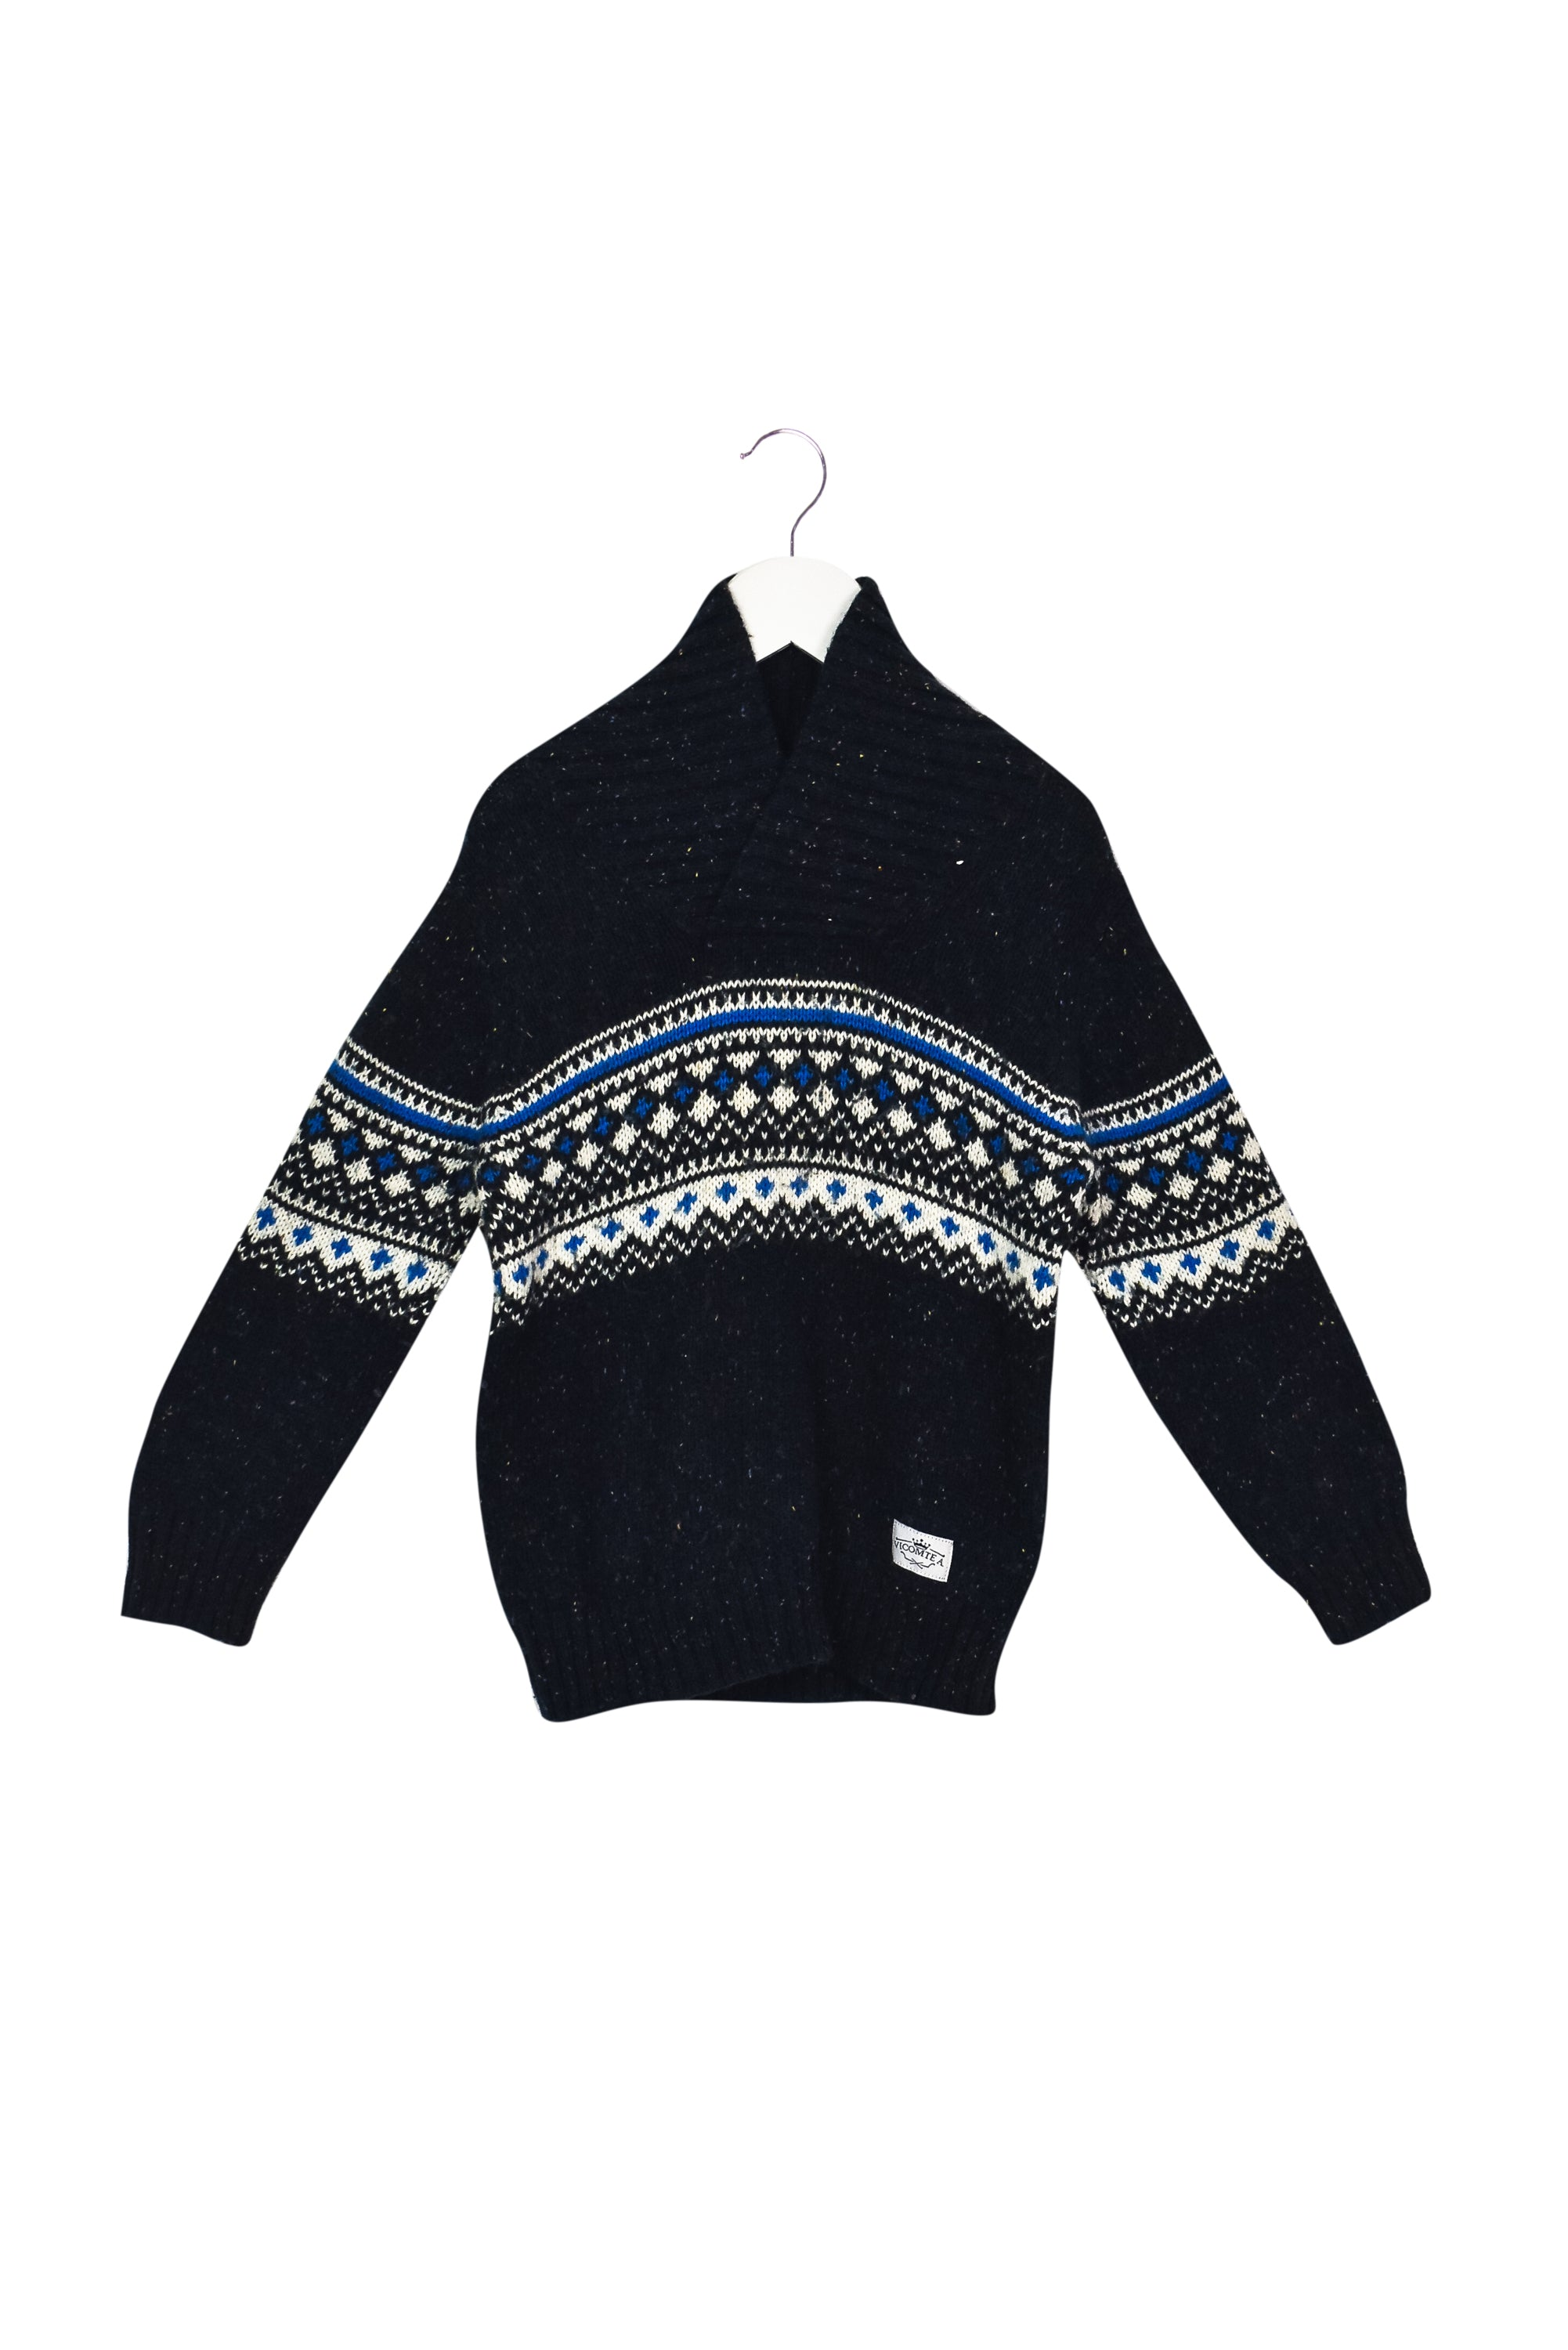 10035290 Vicomte A. Kids~Sweater 4T at Retykle